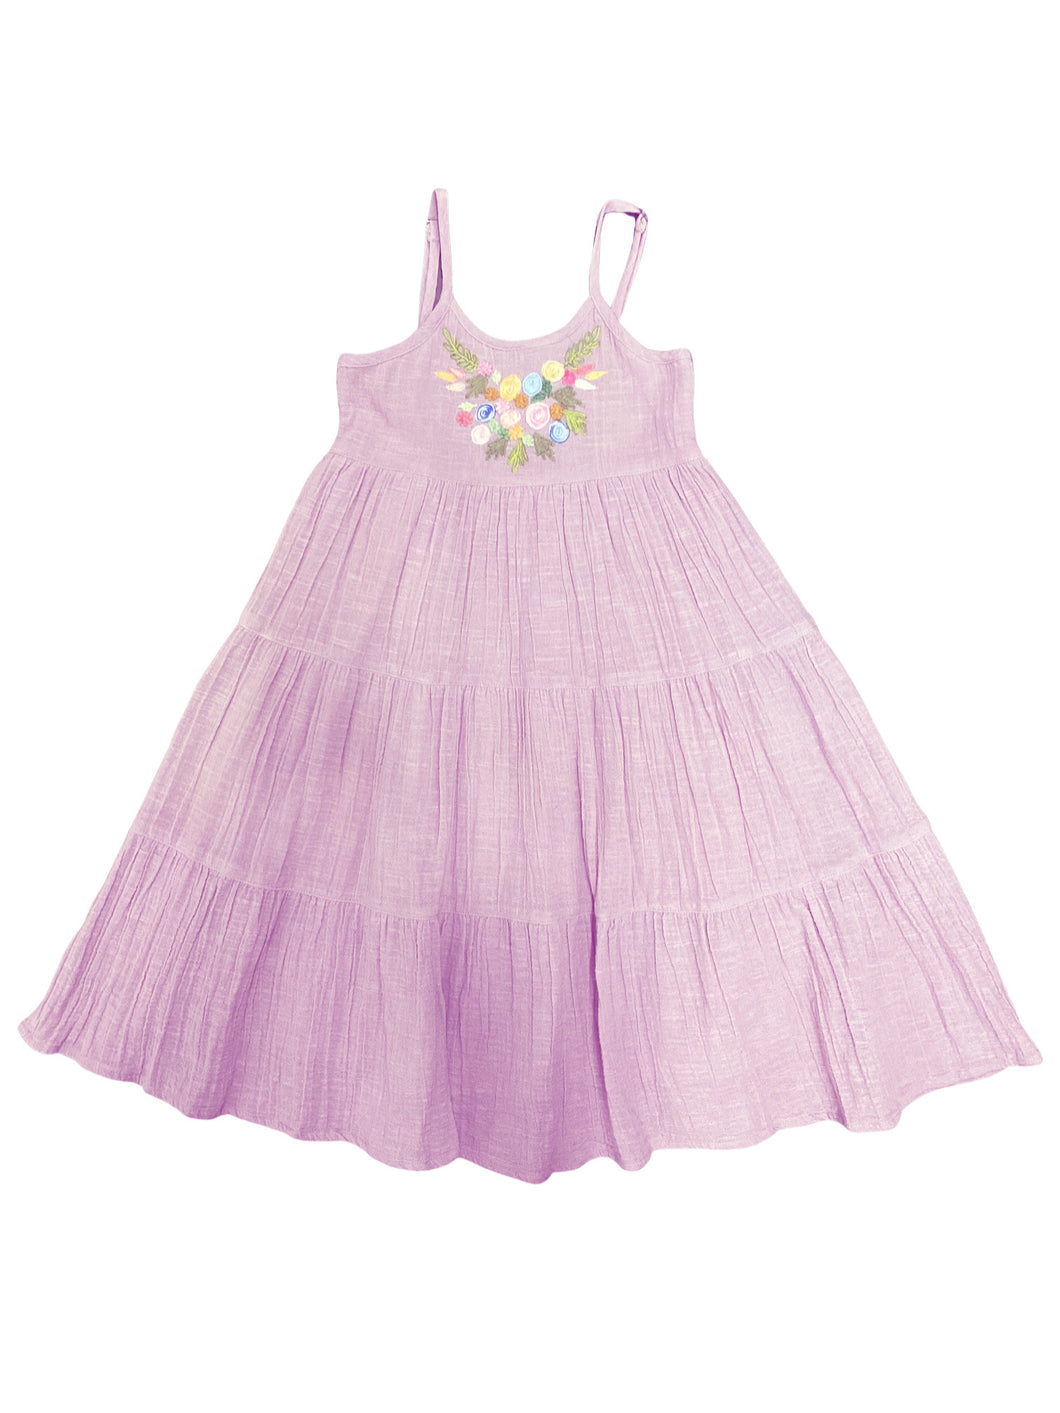 Mimi & Maggie Botanical First Spring Blossoms Girls Dress